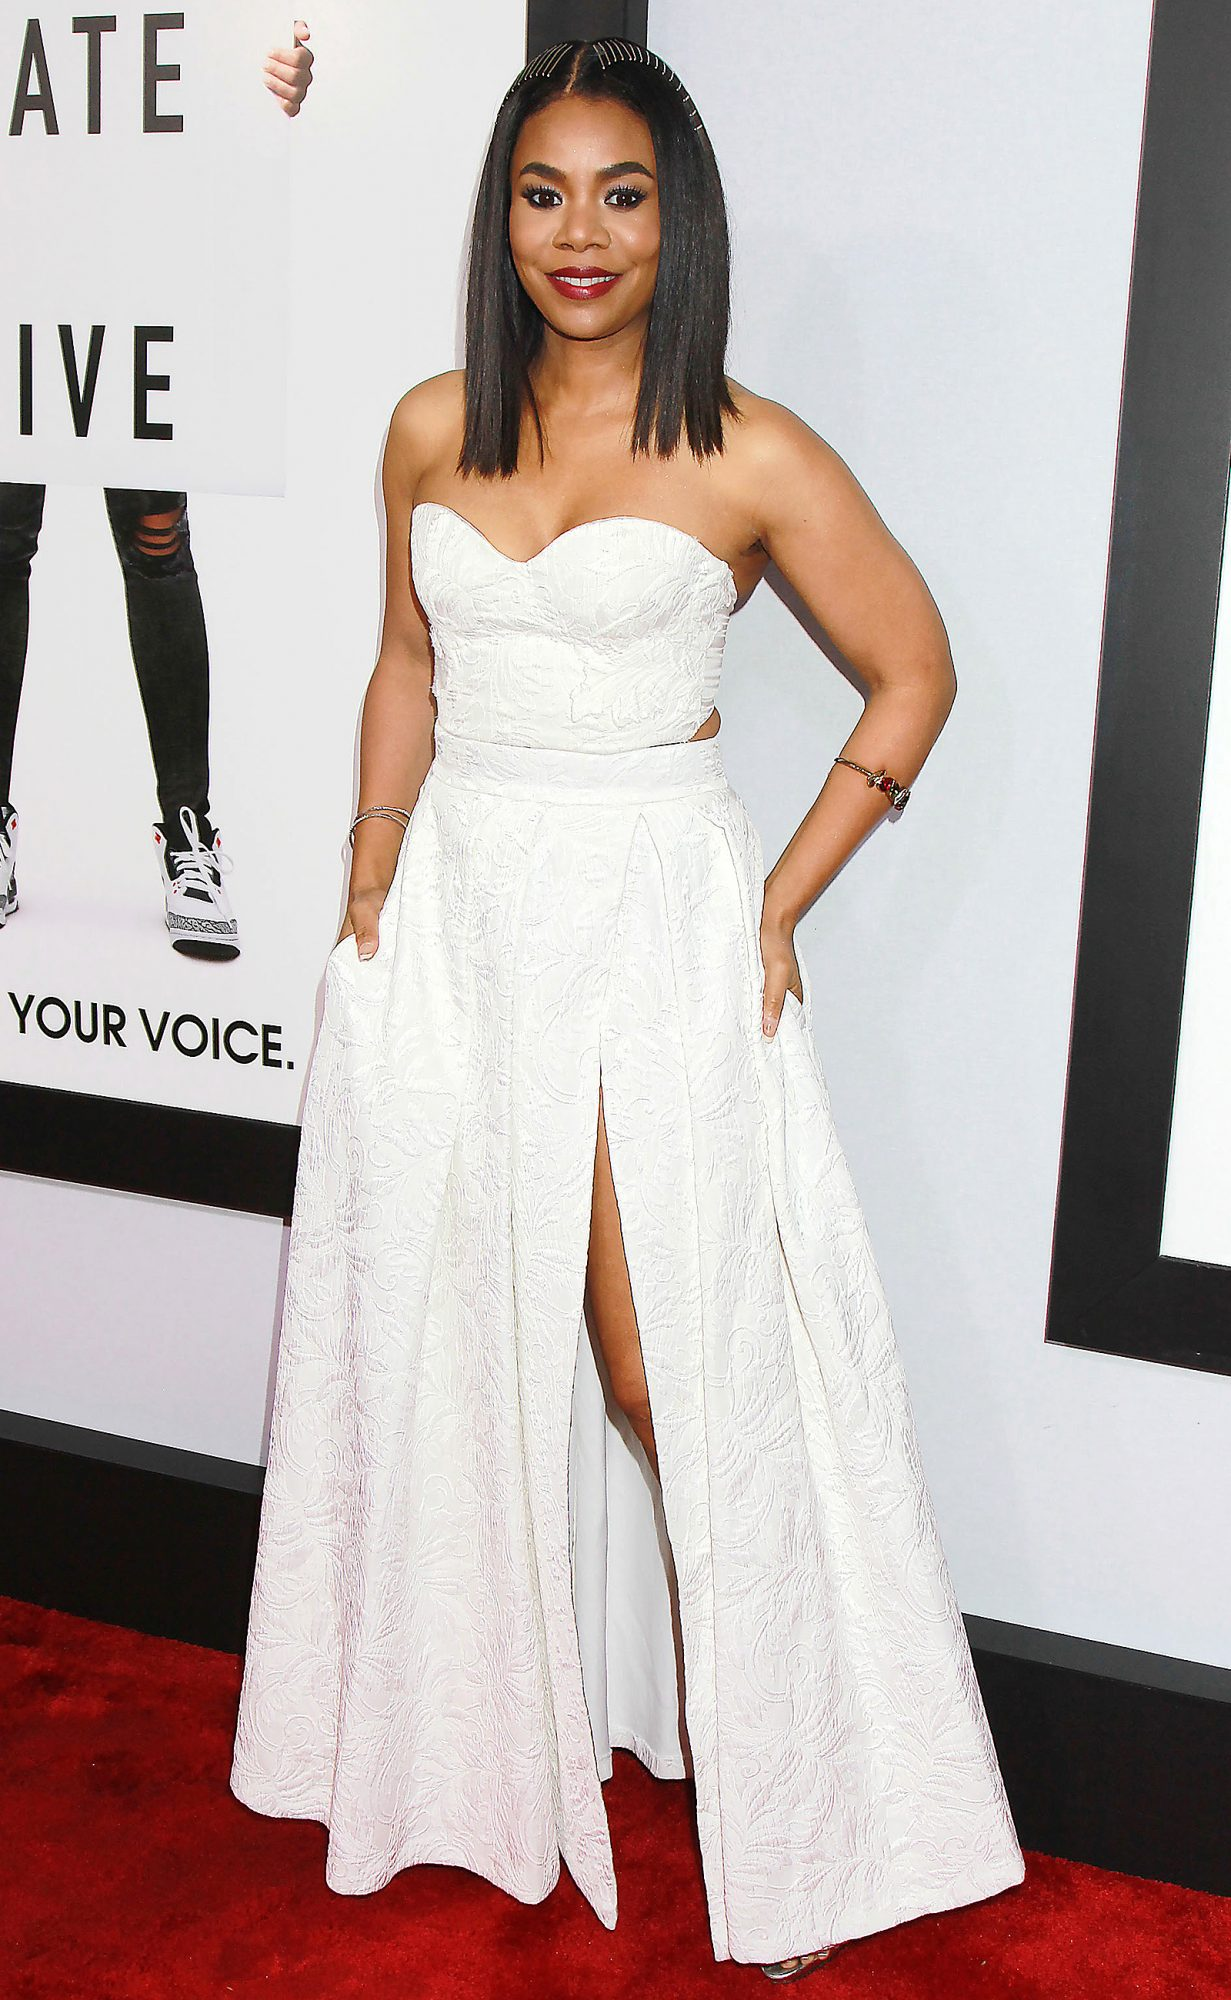 'The Hate U Give' Special New York Screening, USA - 04 Oct 2018